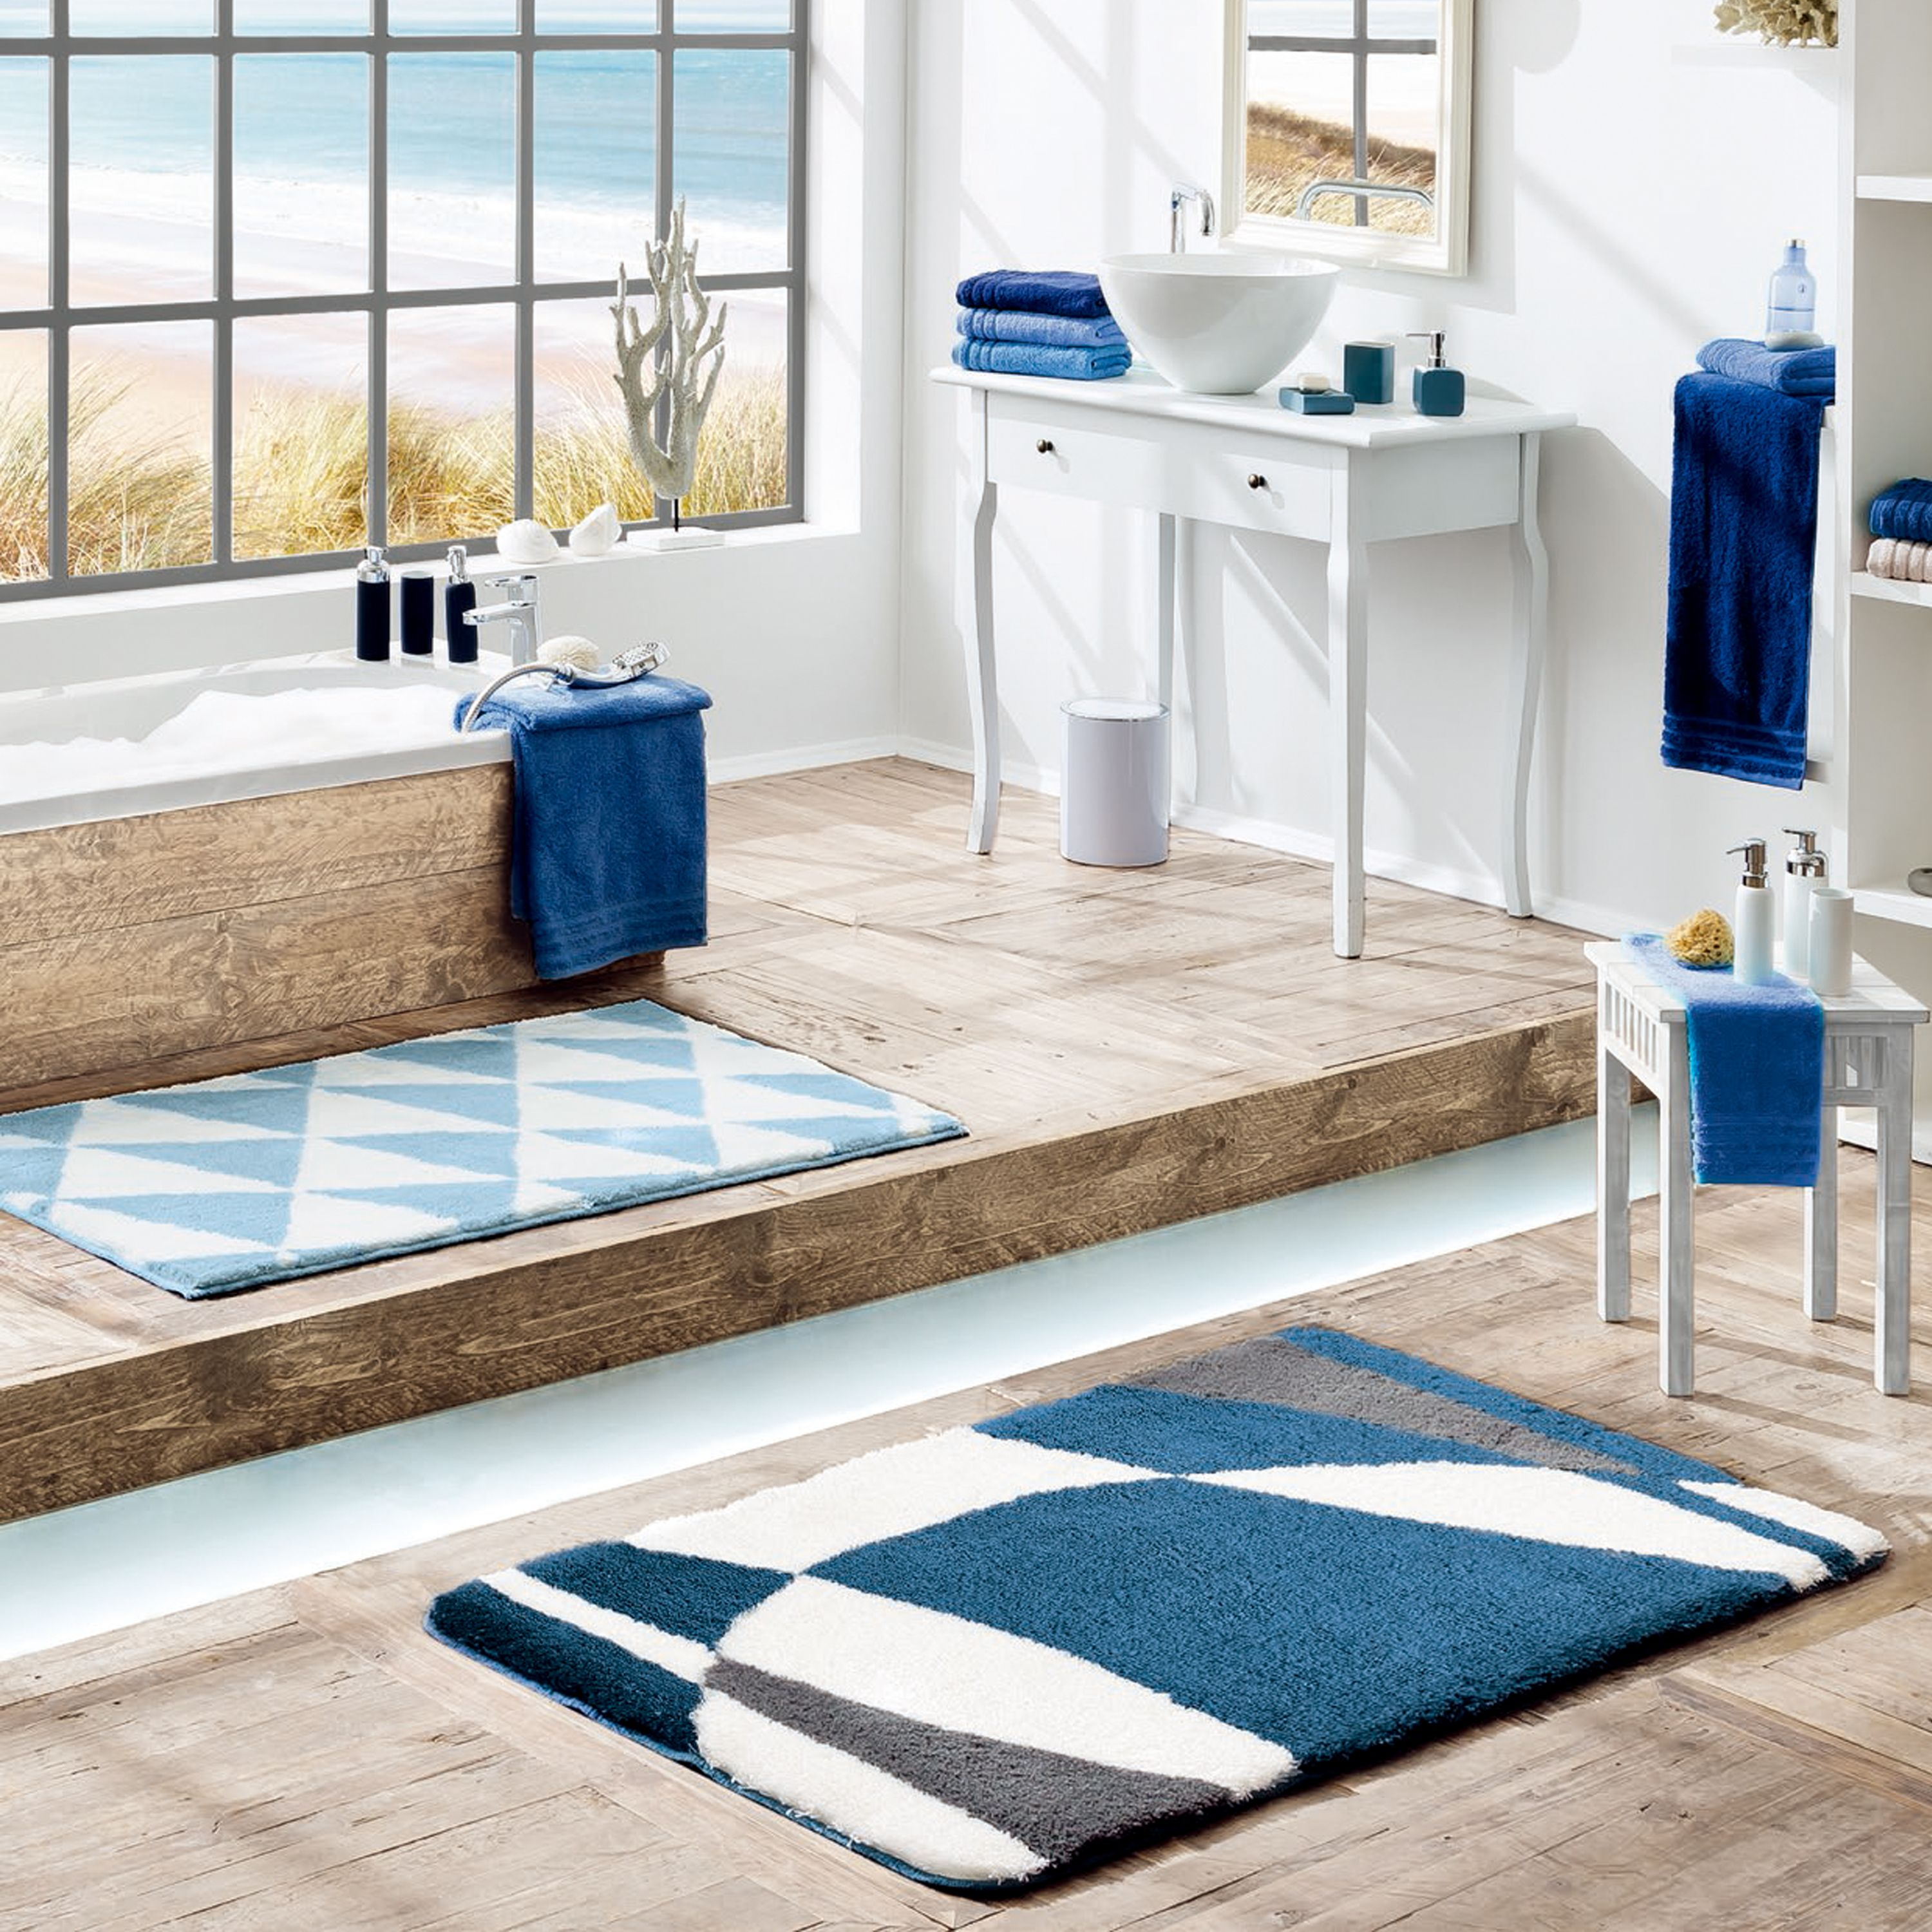 Contemporary Blue Bathroom Featuring A Selection Of Our Bath Rugs And Bath Towels The Bath Ru Contemporary Blue Bathrooms Blue Bathroom Contemporary Bathrooms [ 3000 x 3000 Pixel ]